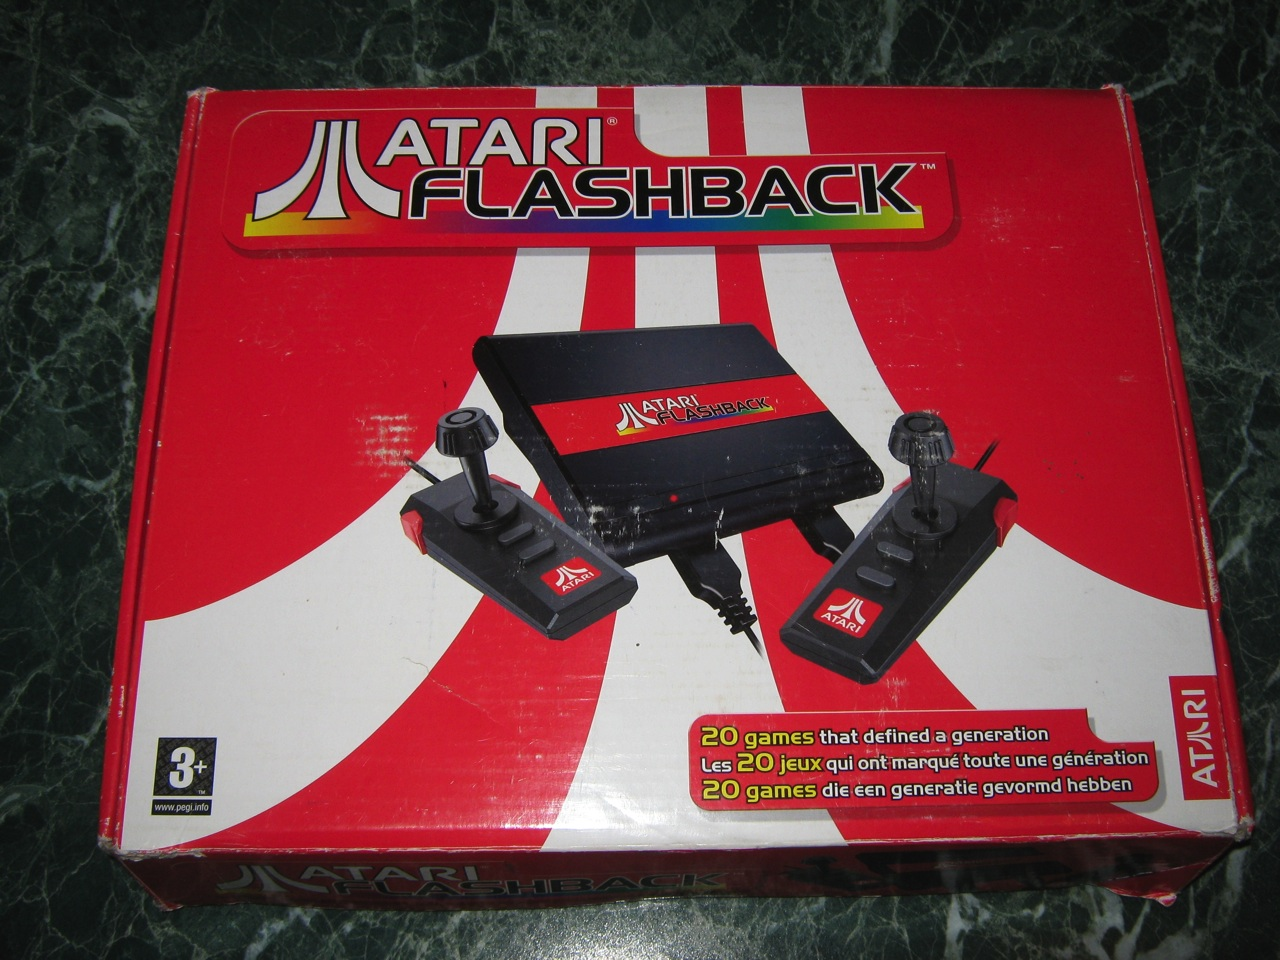 Atari Flashback Classic game console mini 7800 | eBay